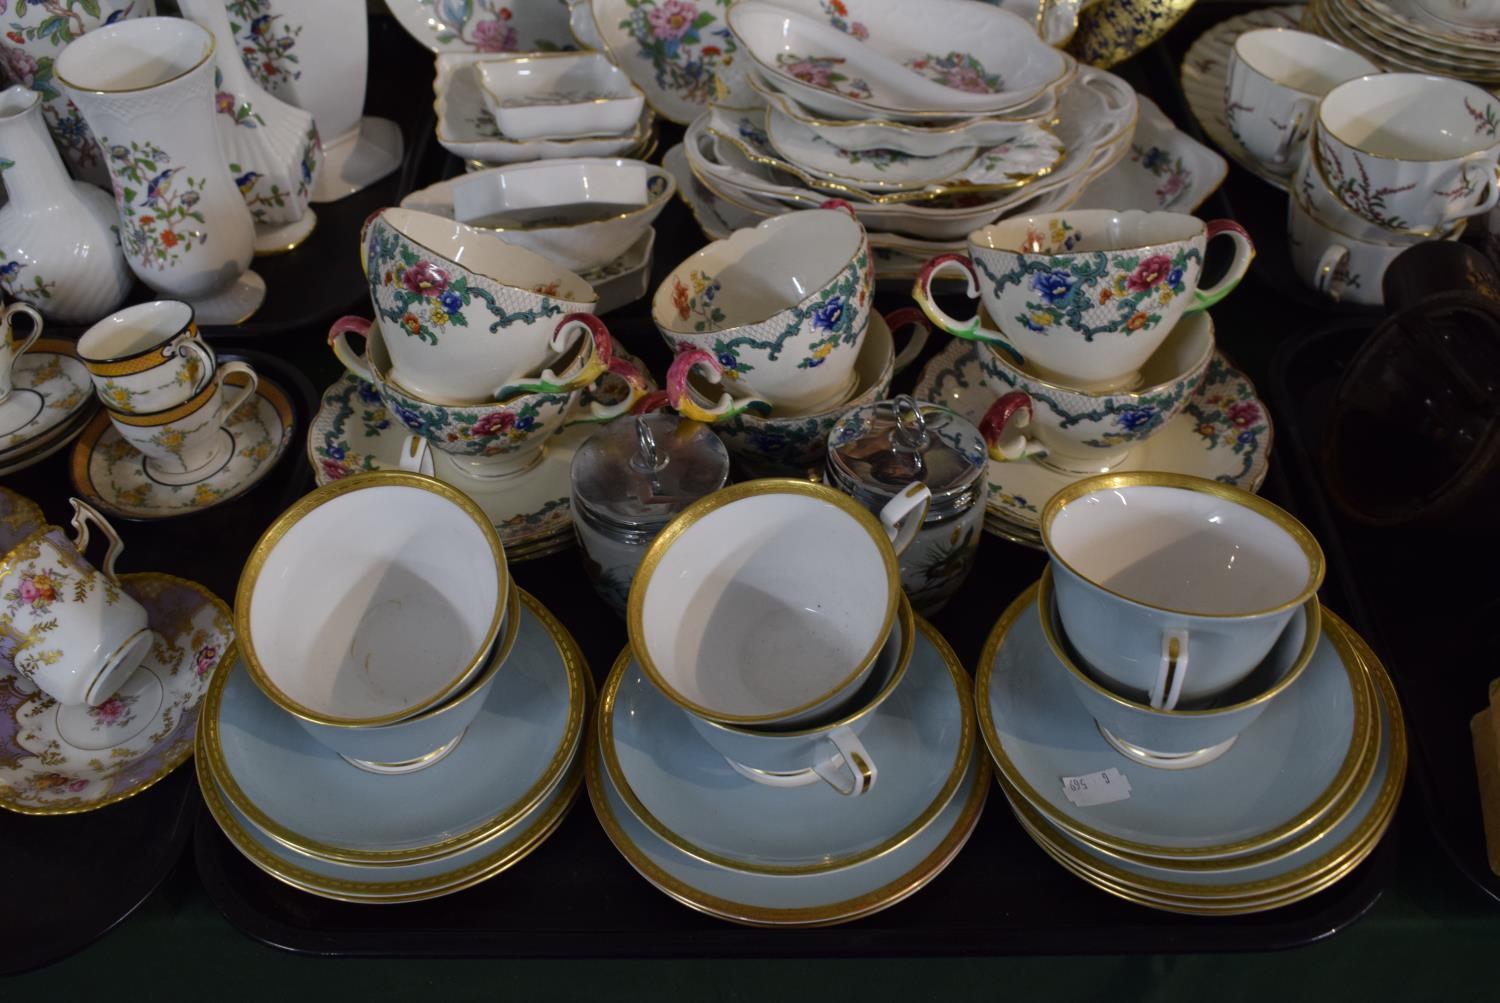 Lot 206 - A Tray Containing Six Royal Worcester Westminster Trios, Six Royal Cauldon Two Handled Cups and